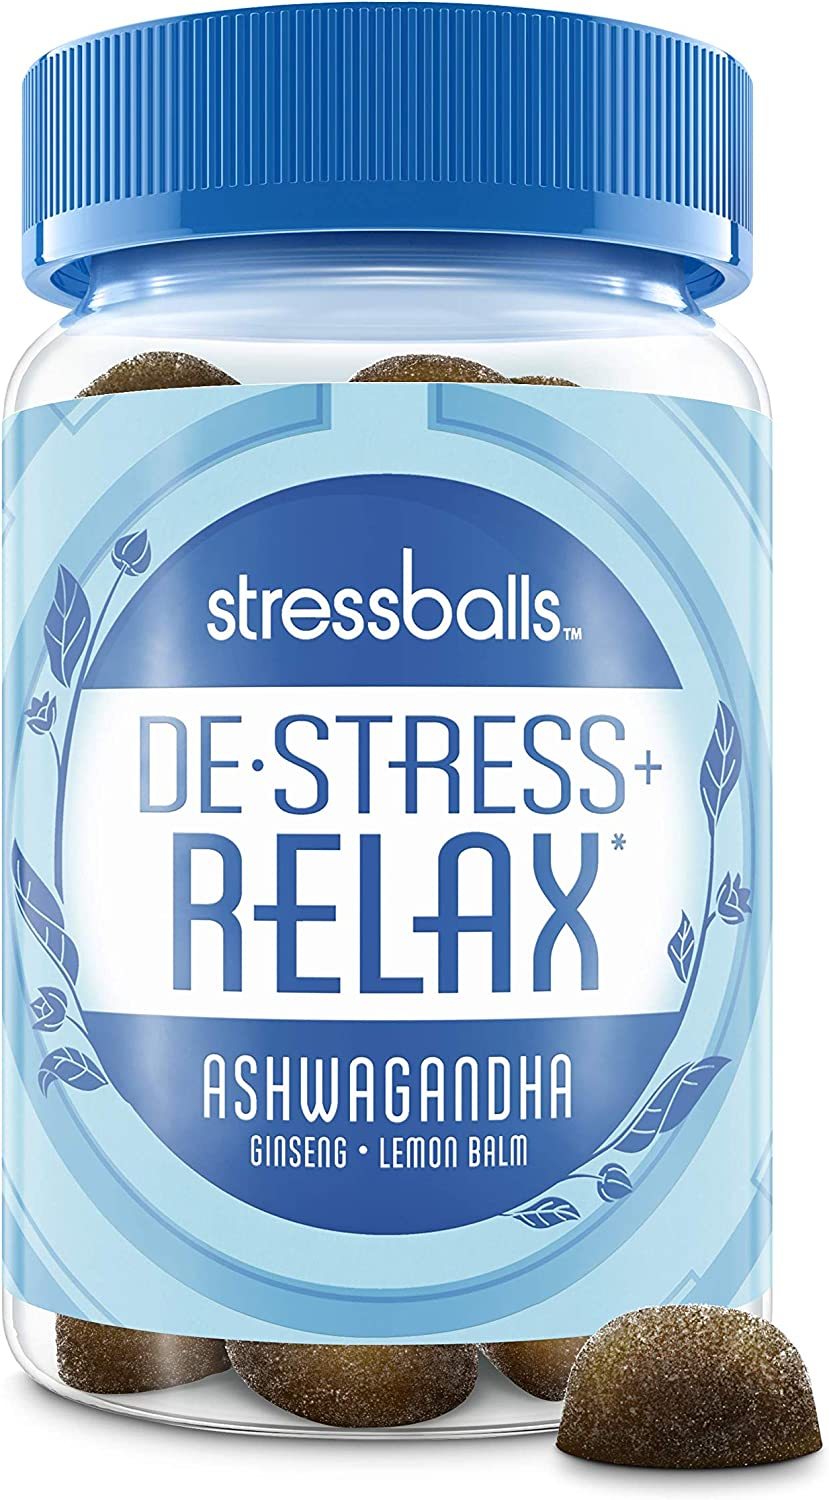 Stressballs Relax Stress Relief Supplement to Help You De-Stress and Relax,* 46 Gummies with an Herbal Blend of Ashwagandha, Lemon Balm and Ginseng